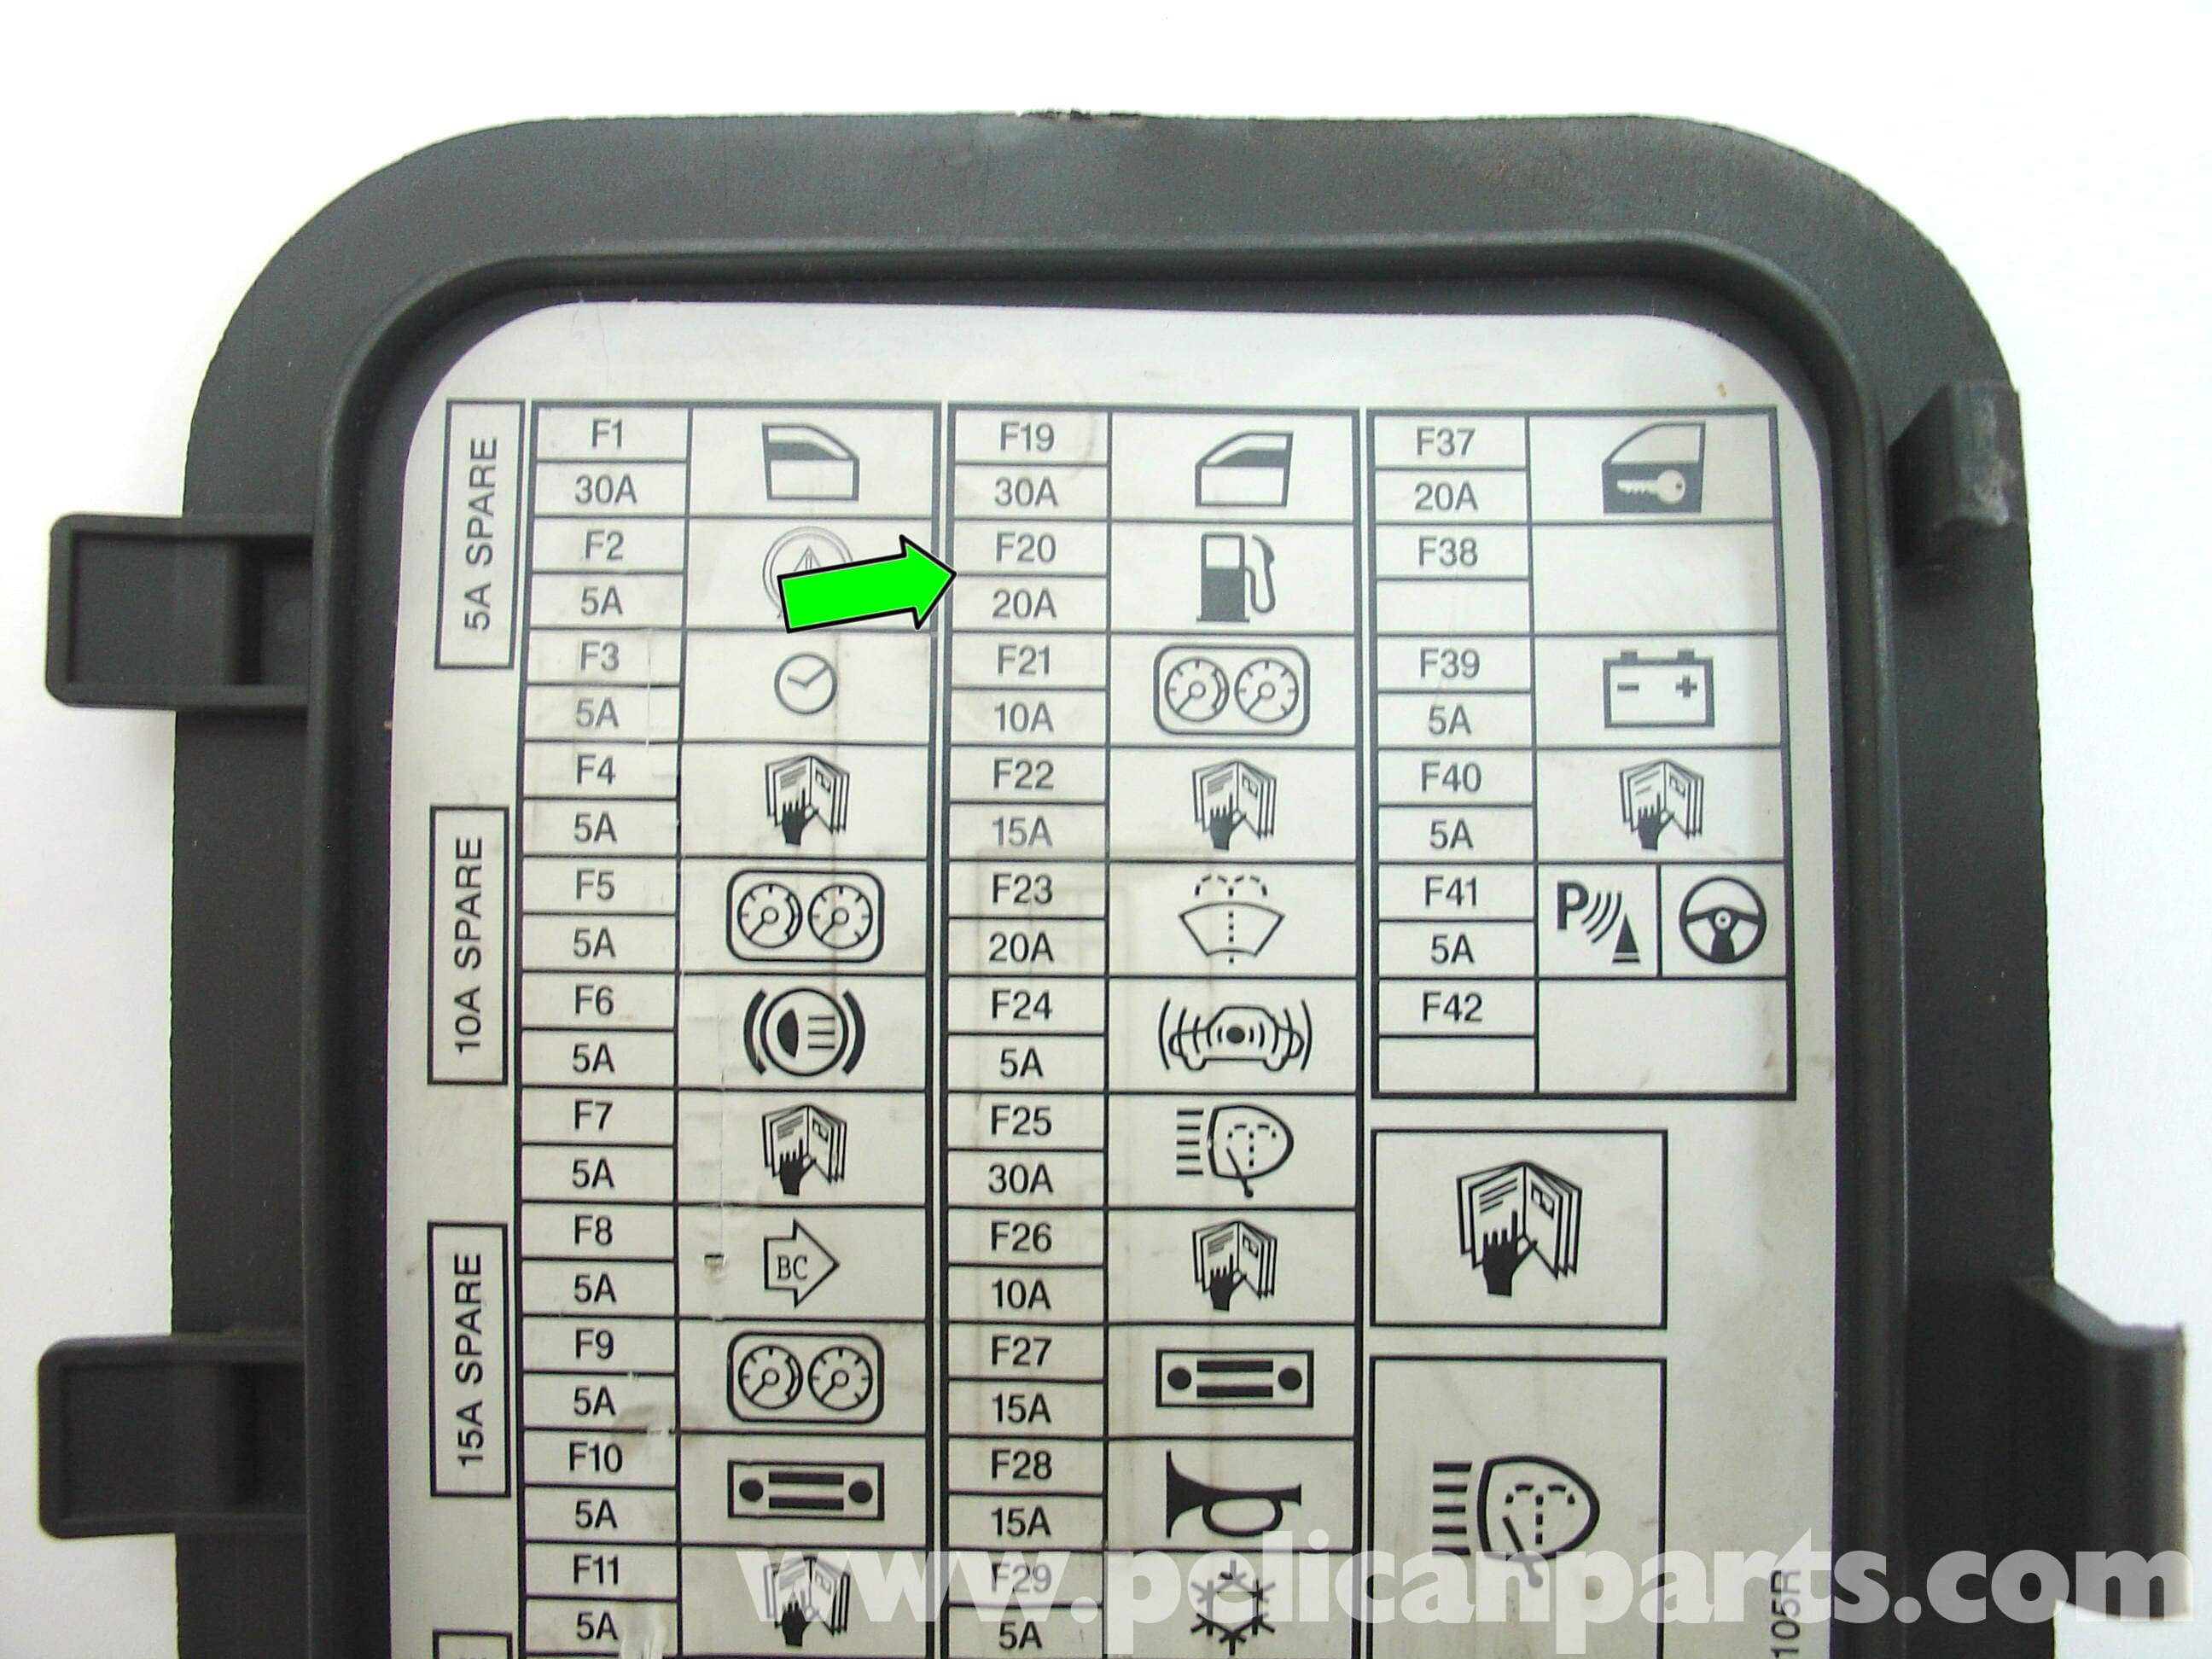 2007 Mini Cooper Fuse Diagram Simple Wiring Diagram Lincoln MKZ Fuse Box Diagram  2007 Mini Fuse Diagram